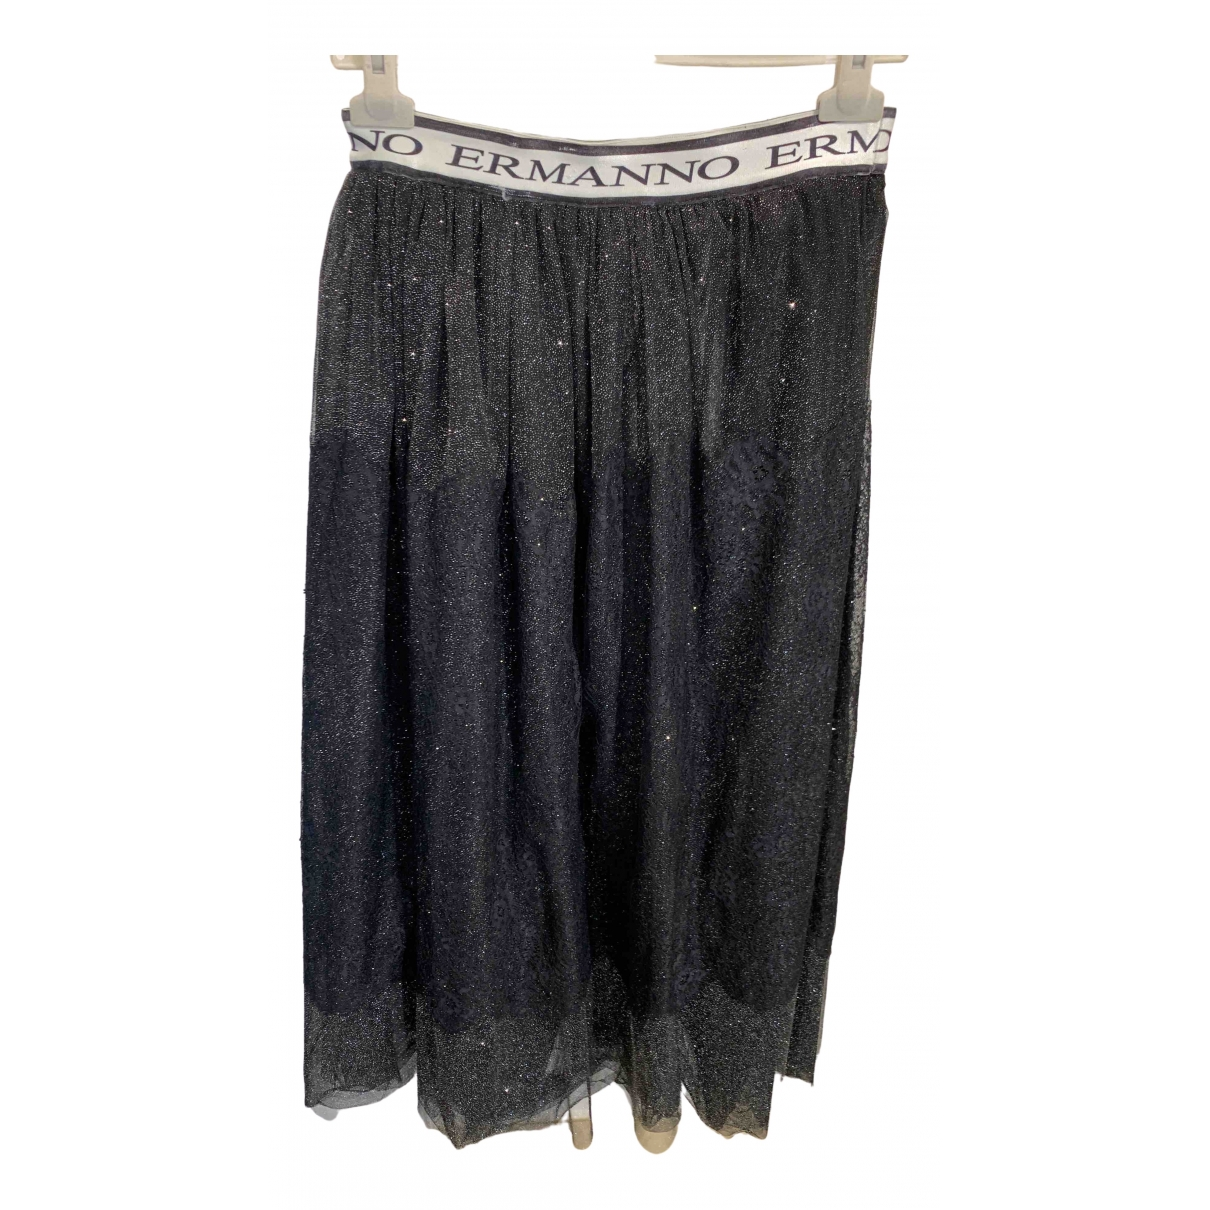 Ermanno Scervino \N Black skirt for Women 38 IT